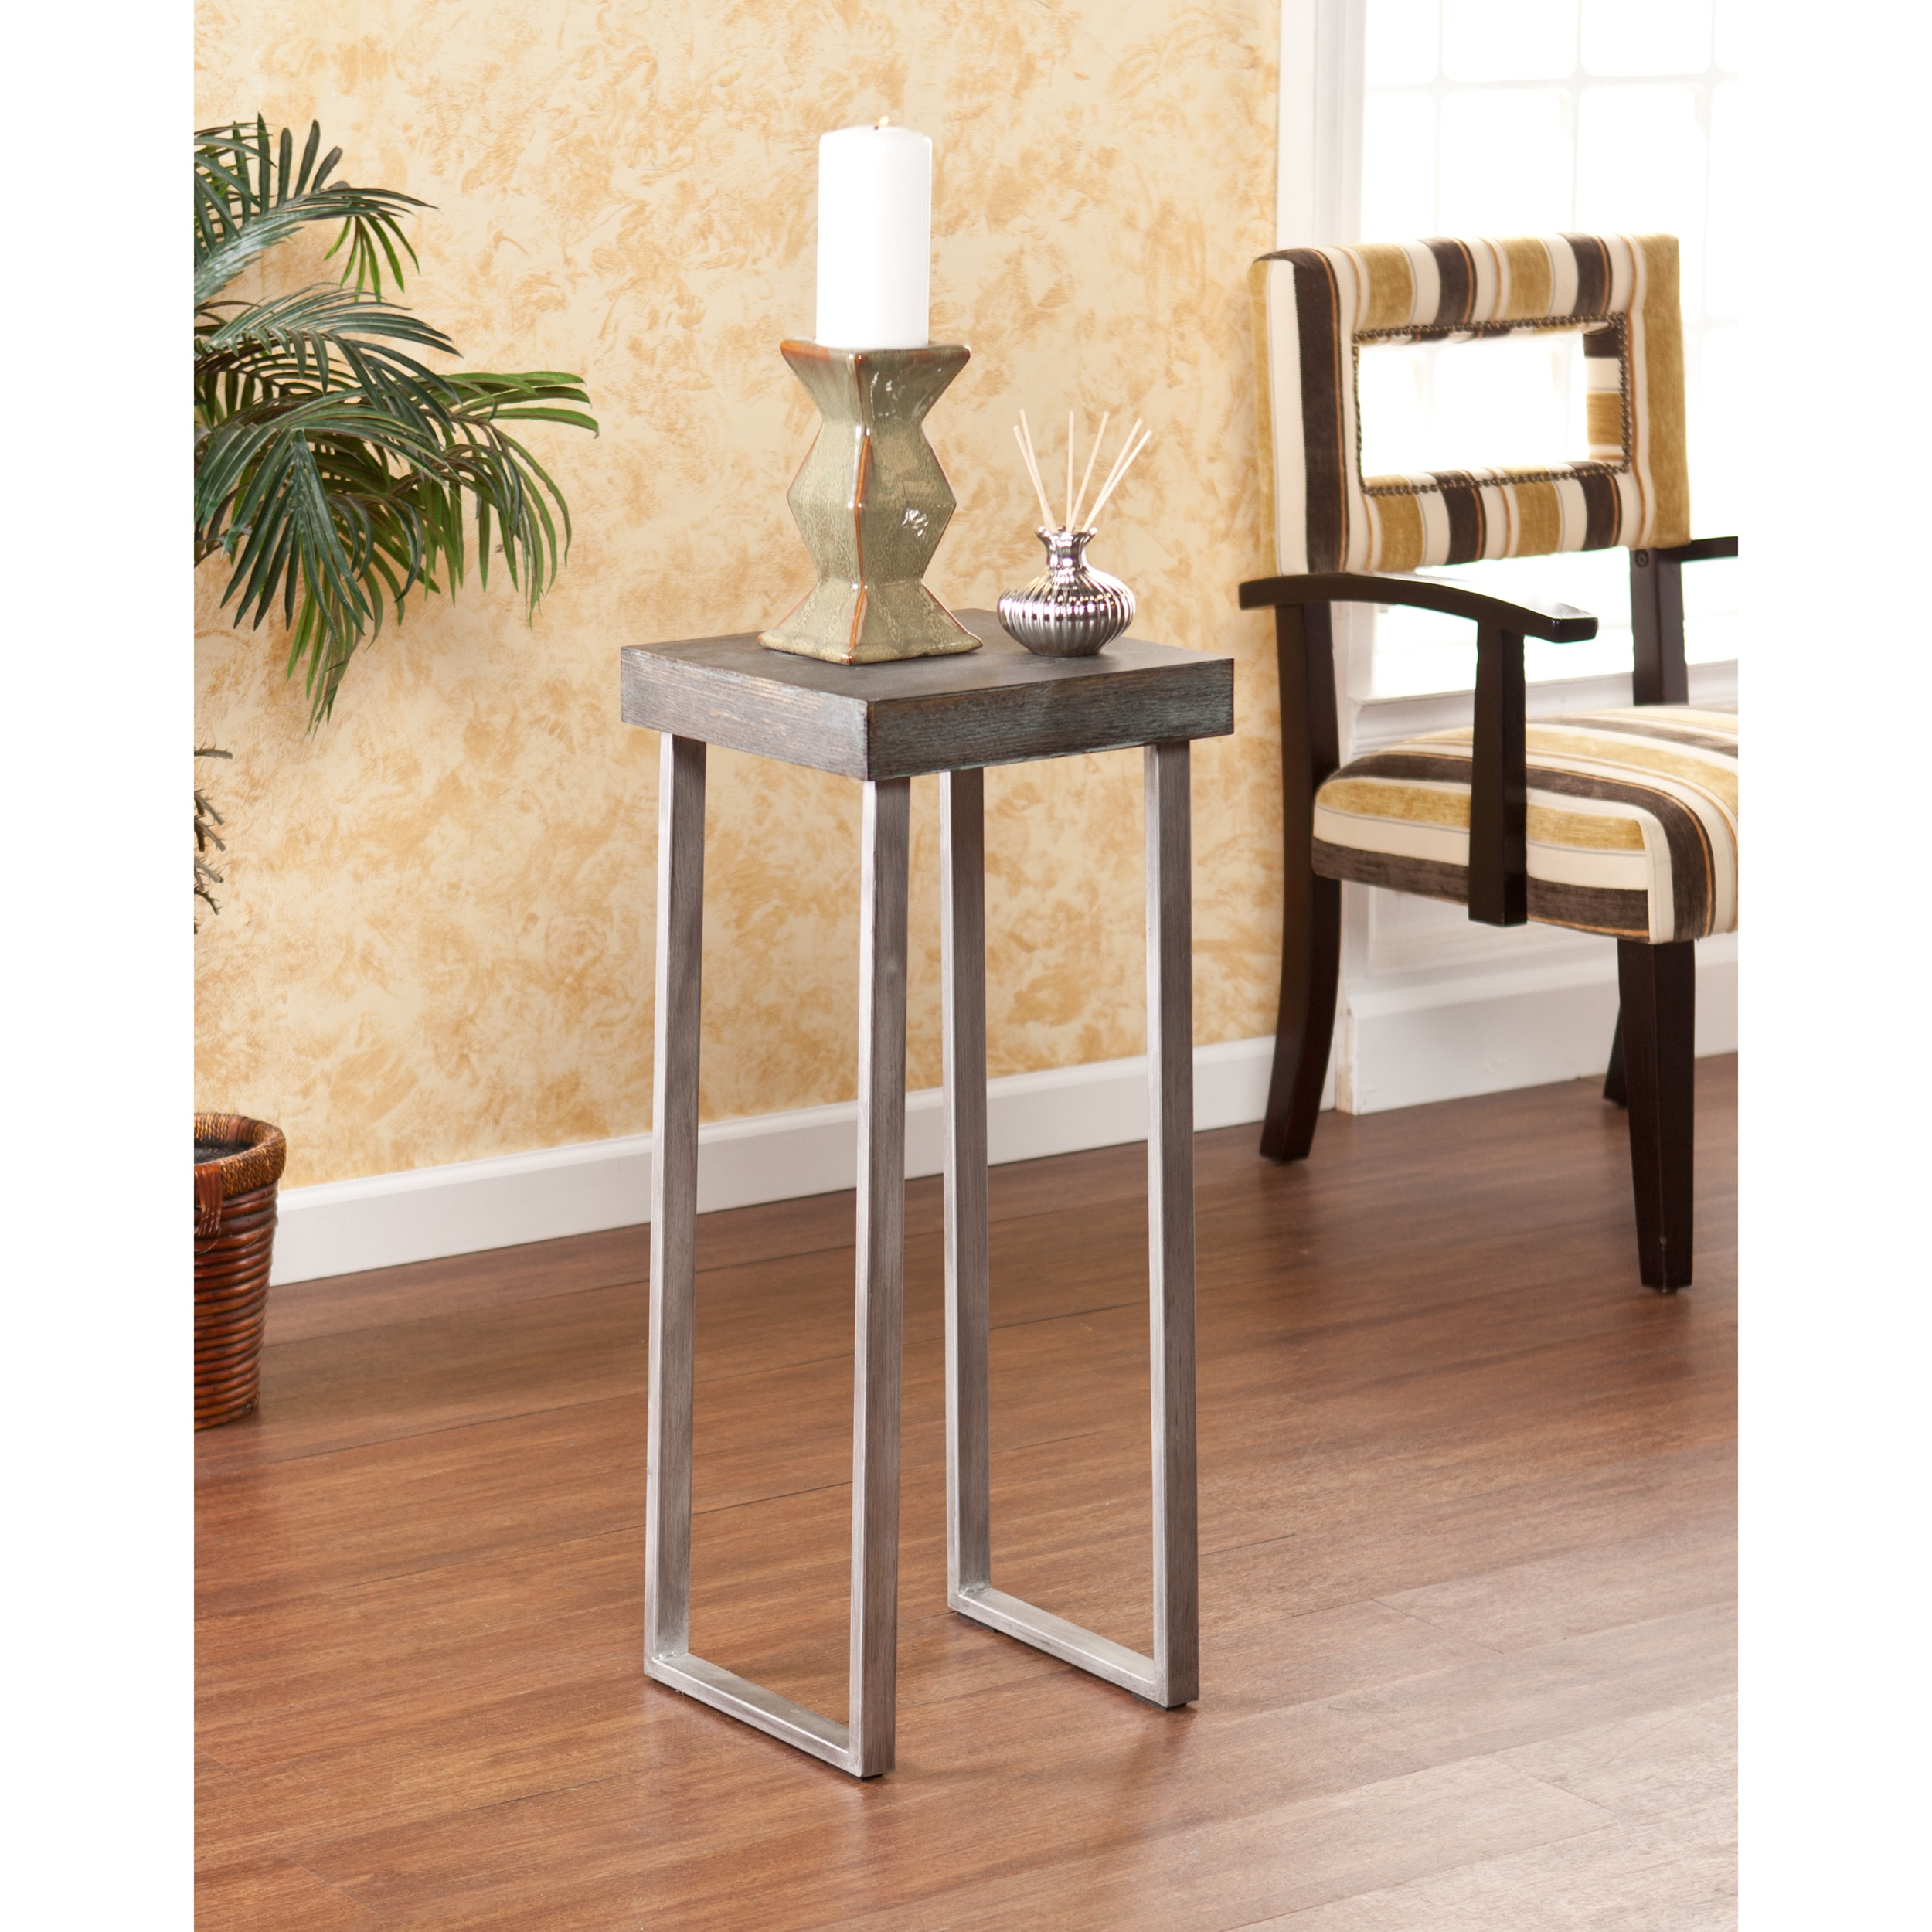 harper blvd lumberton pedestal accent table free shipping upton home metal black cube end oblong cover entrance furniture sage green coffee zinc tables target white drop leaf